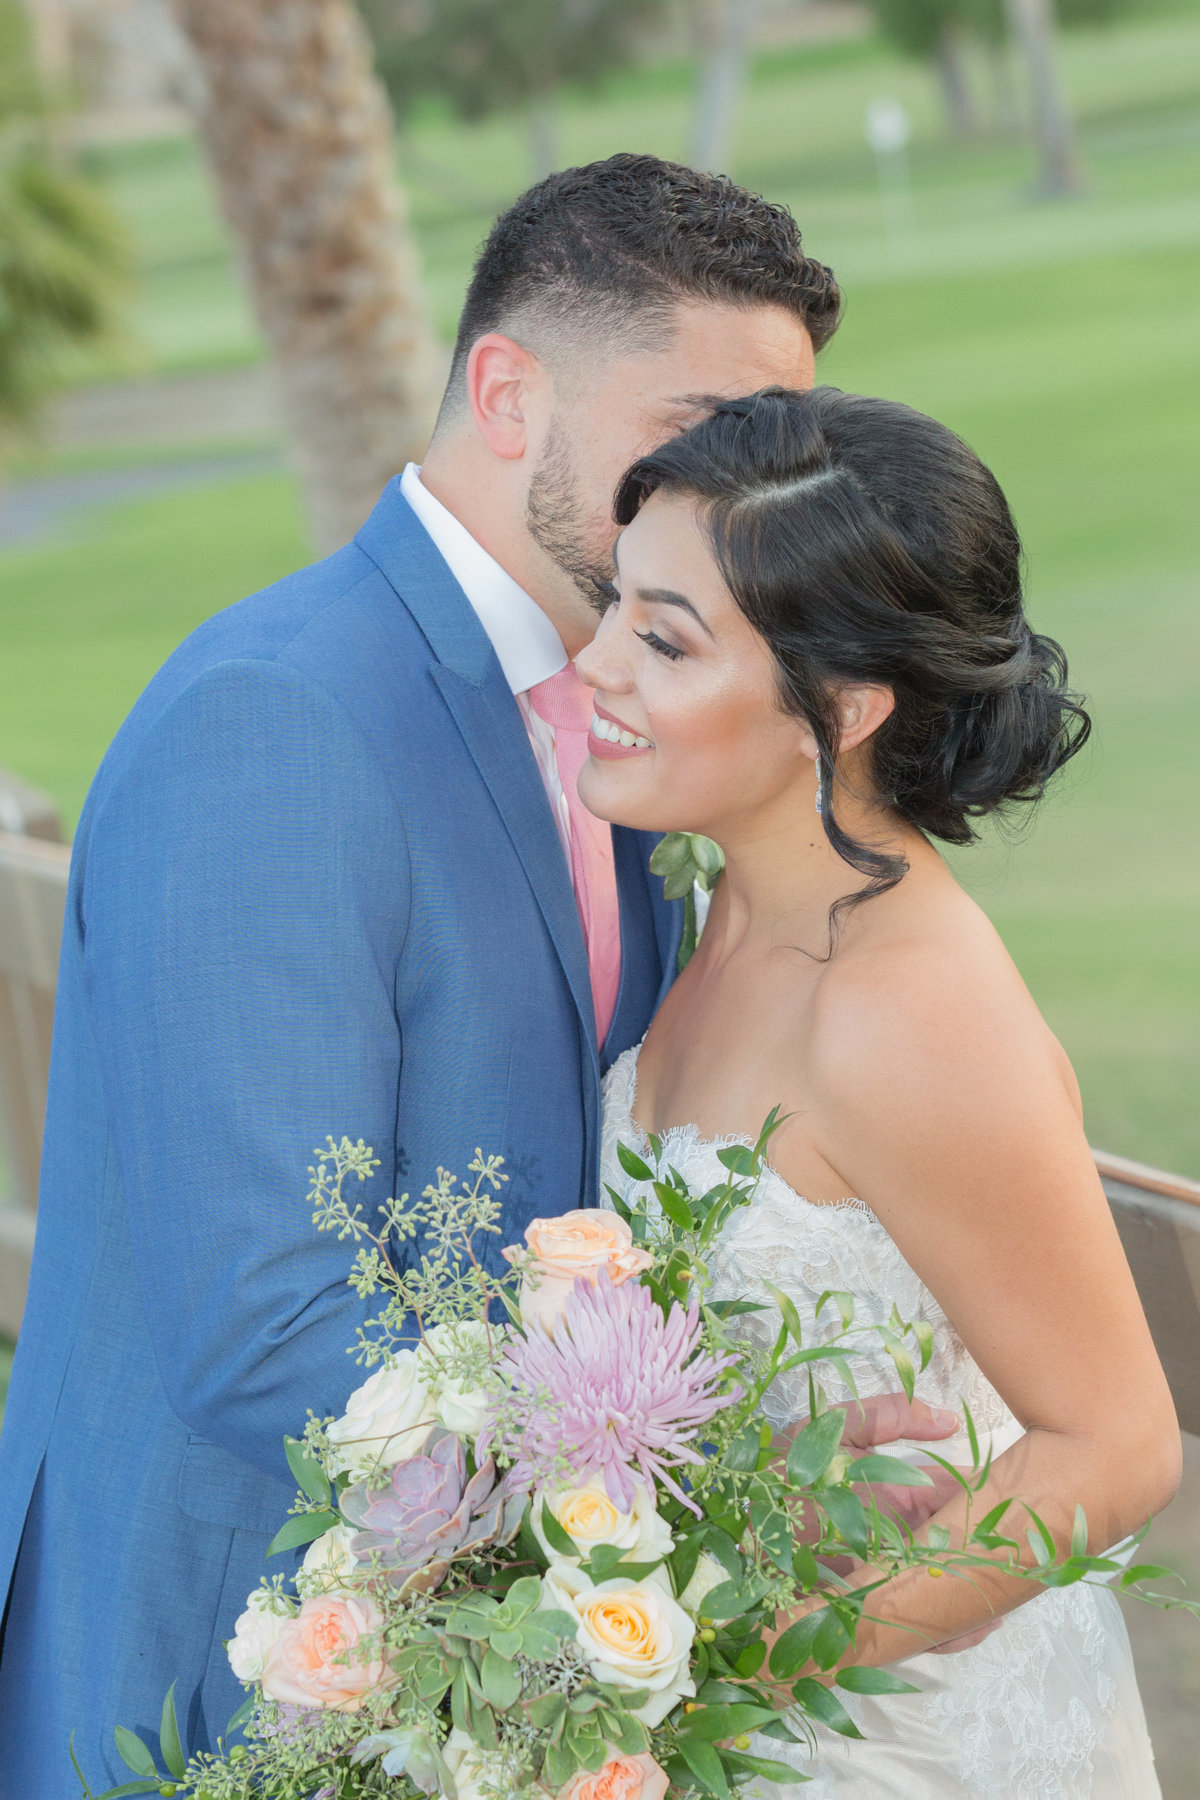 Erica Mendenhall Photography_Indian Wells Wedding_MP_0502web